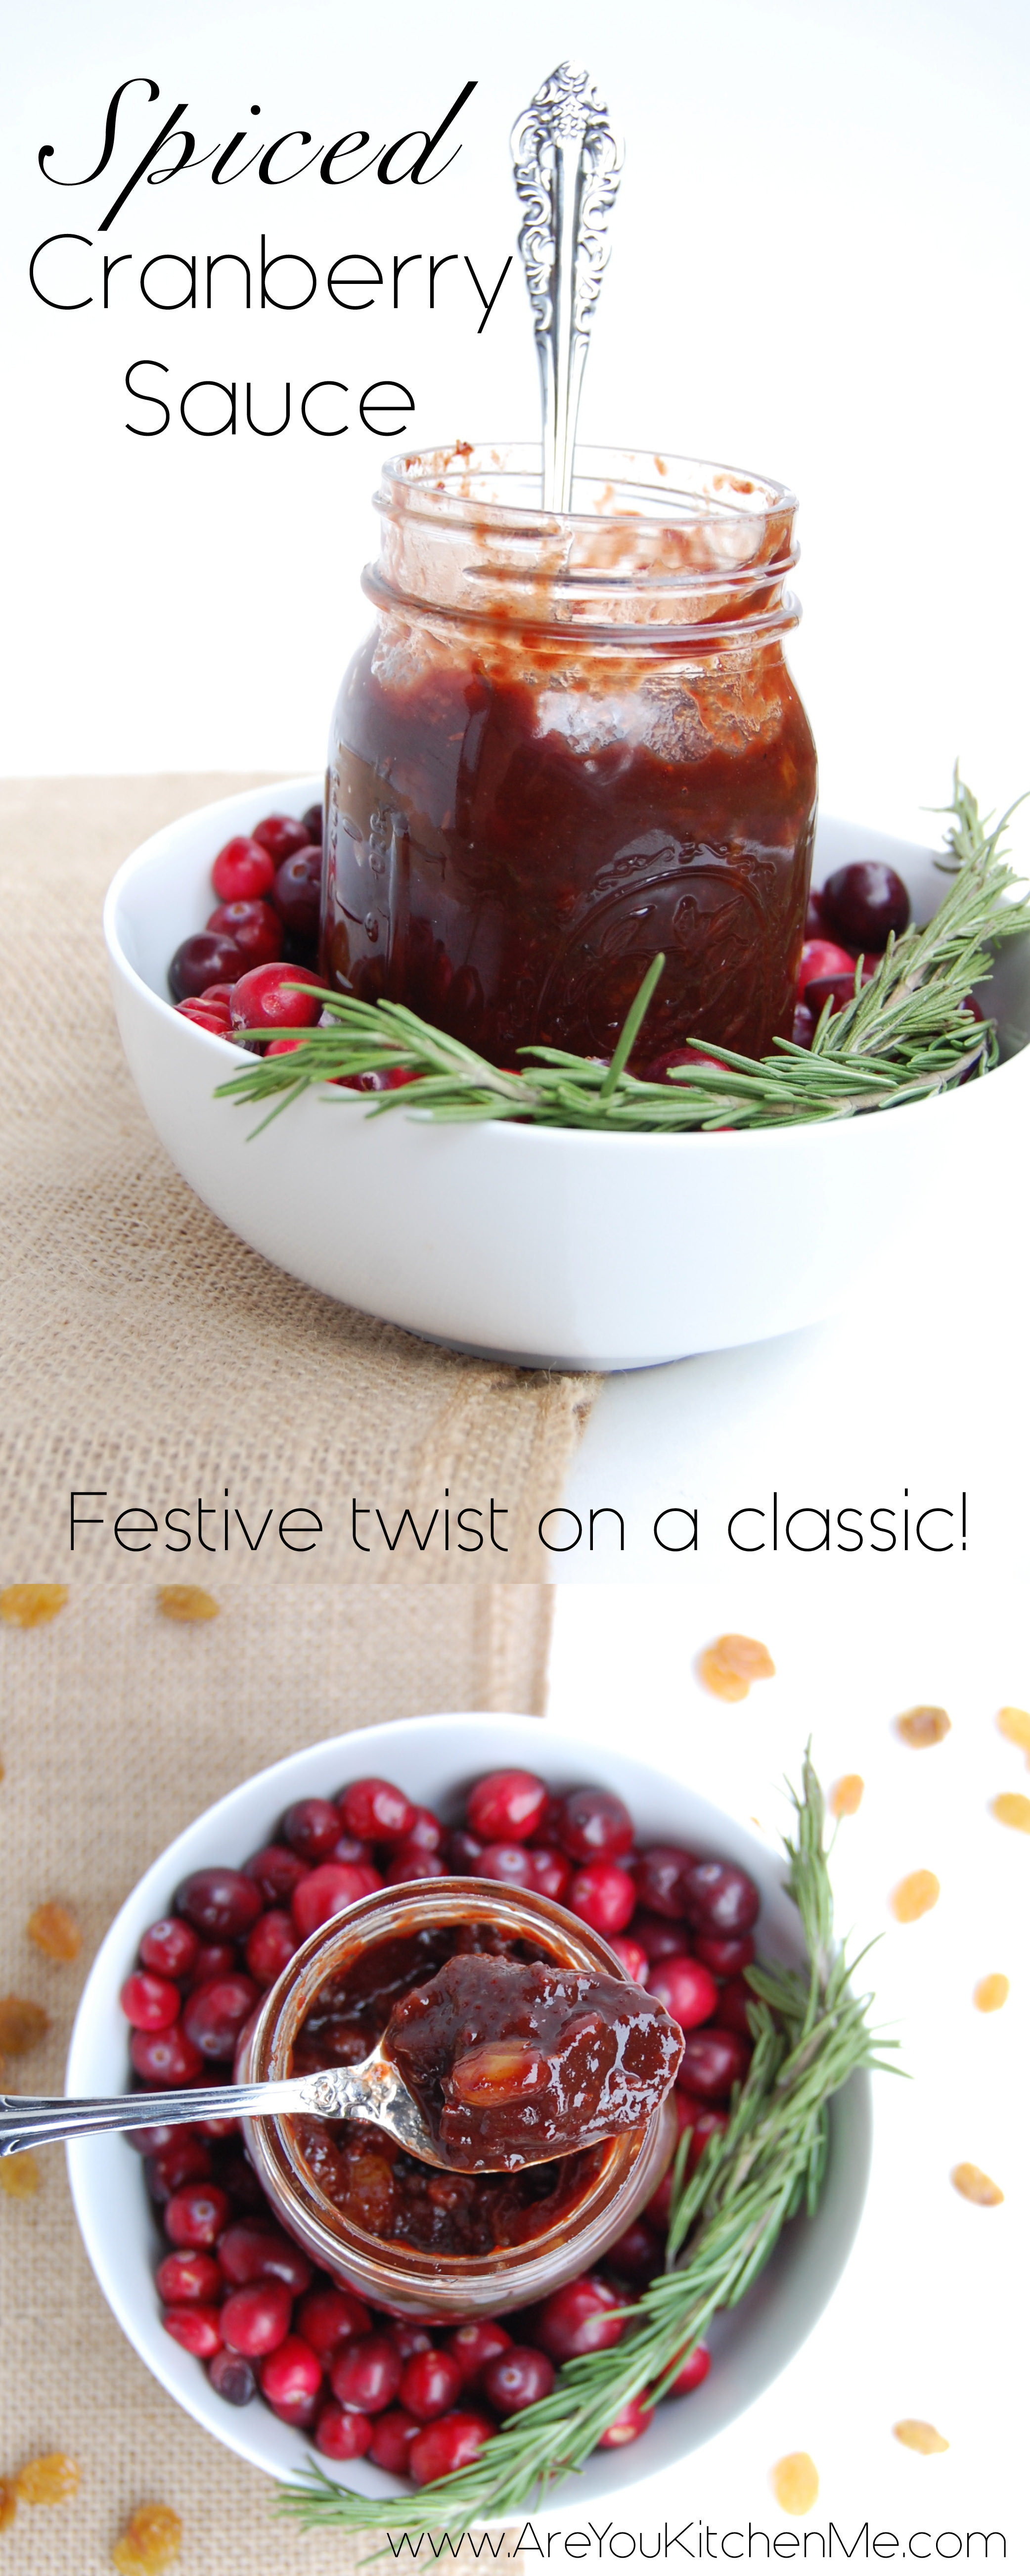 Spiced Cranberry Sauce | AreYouKitchenMe.com